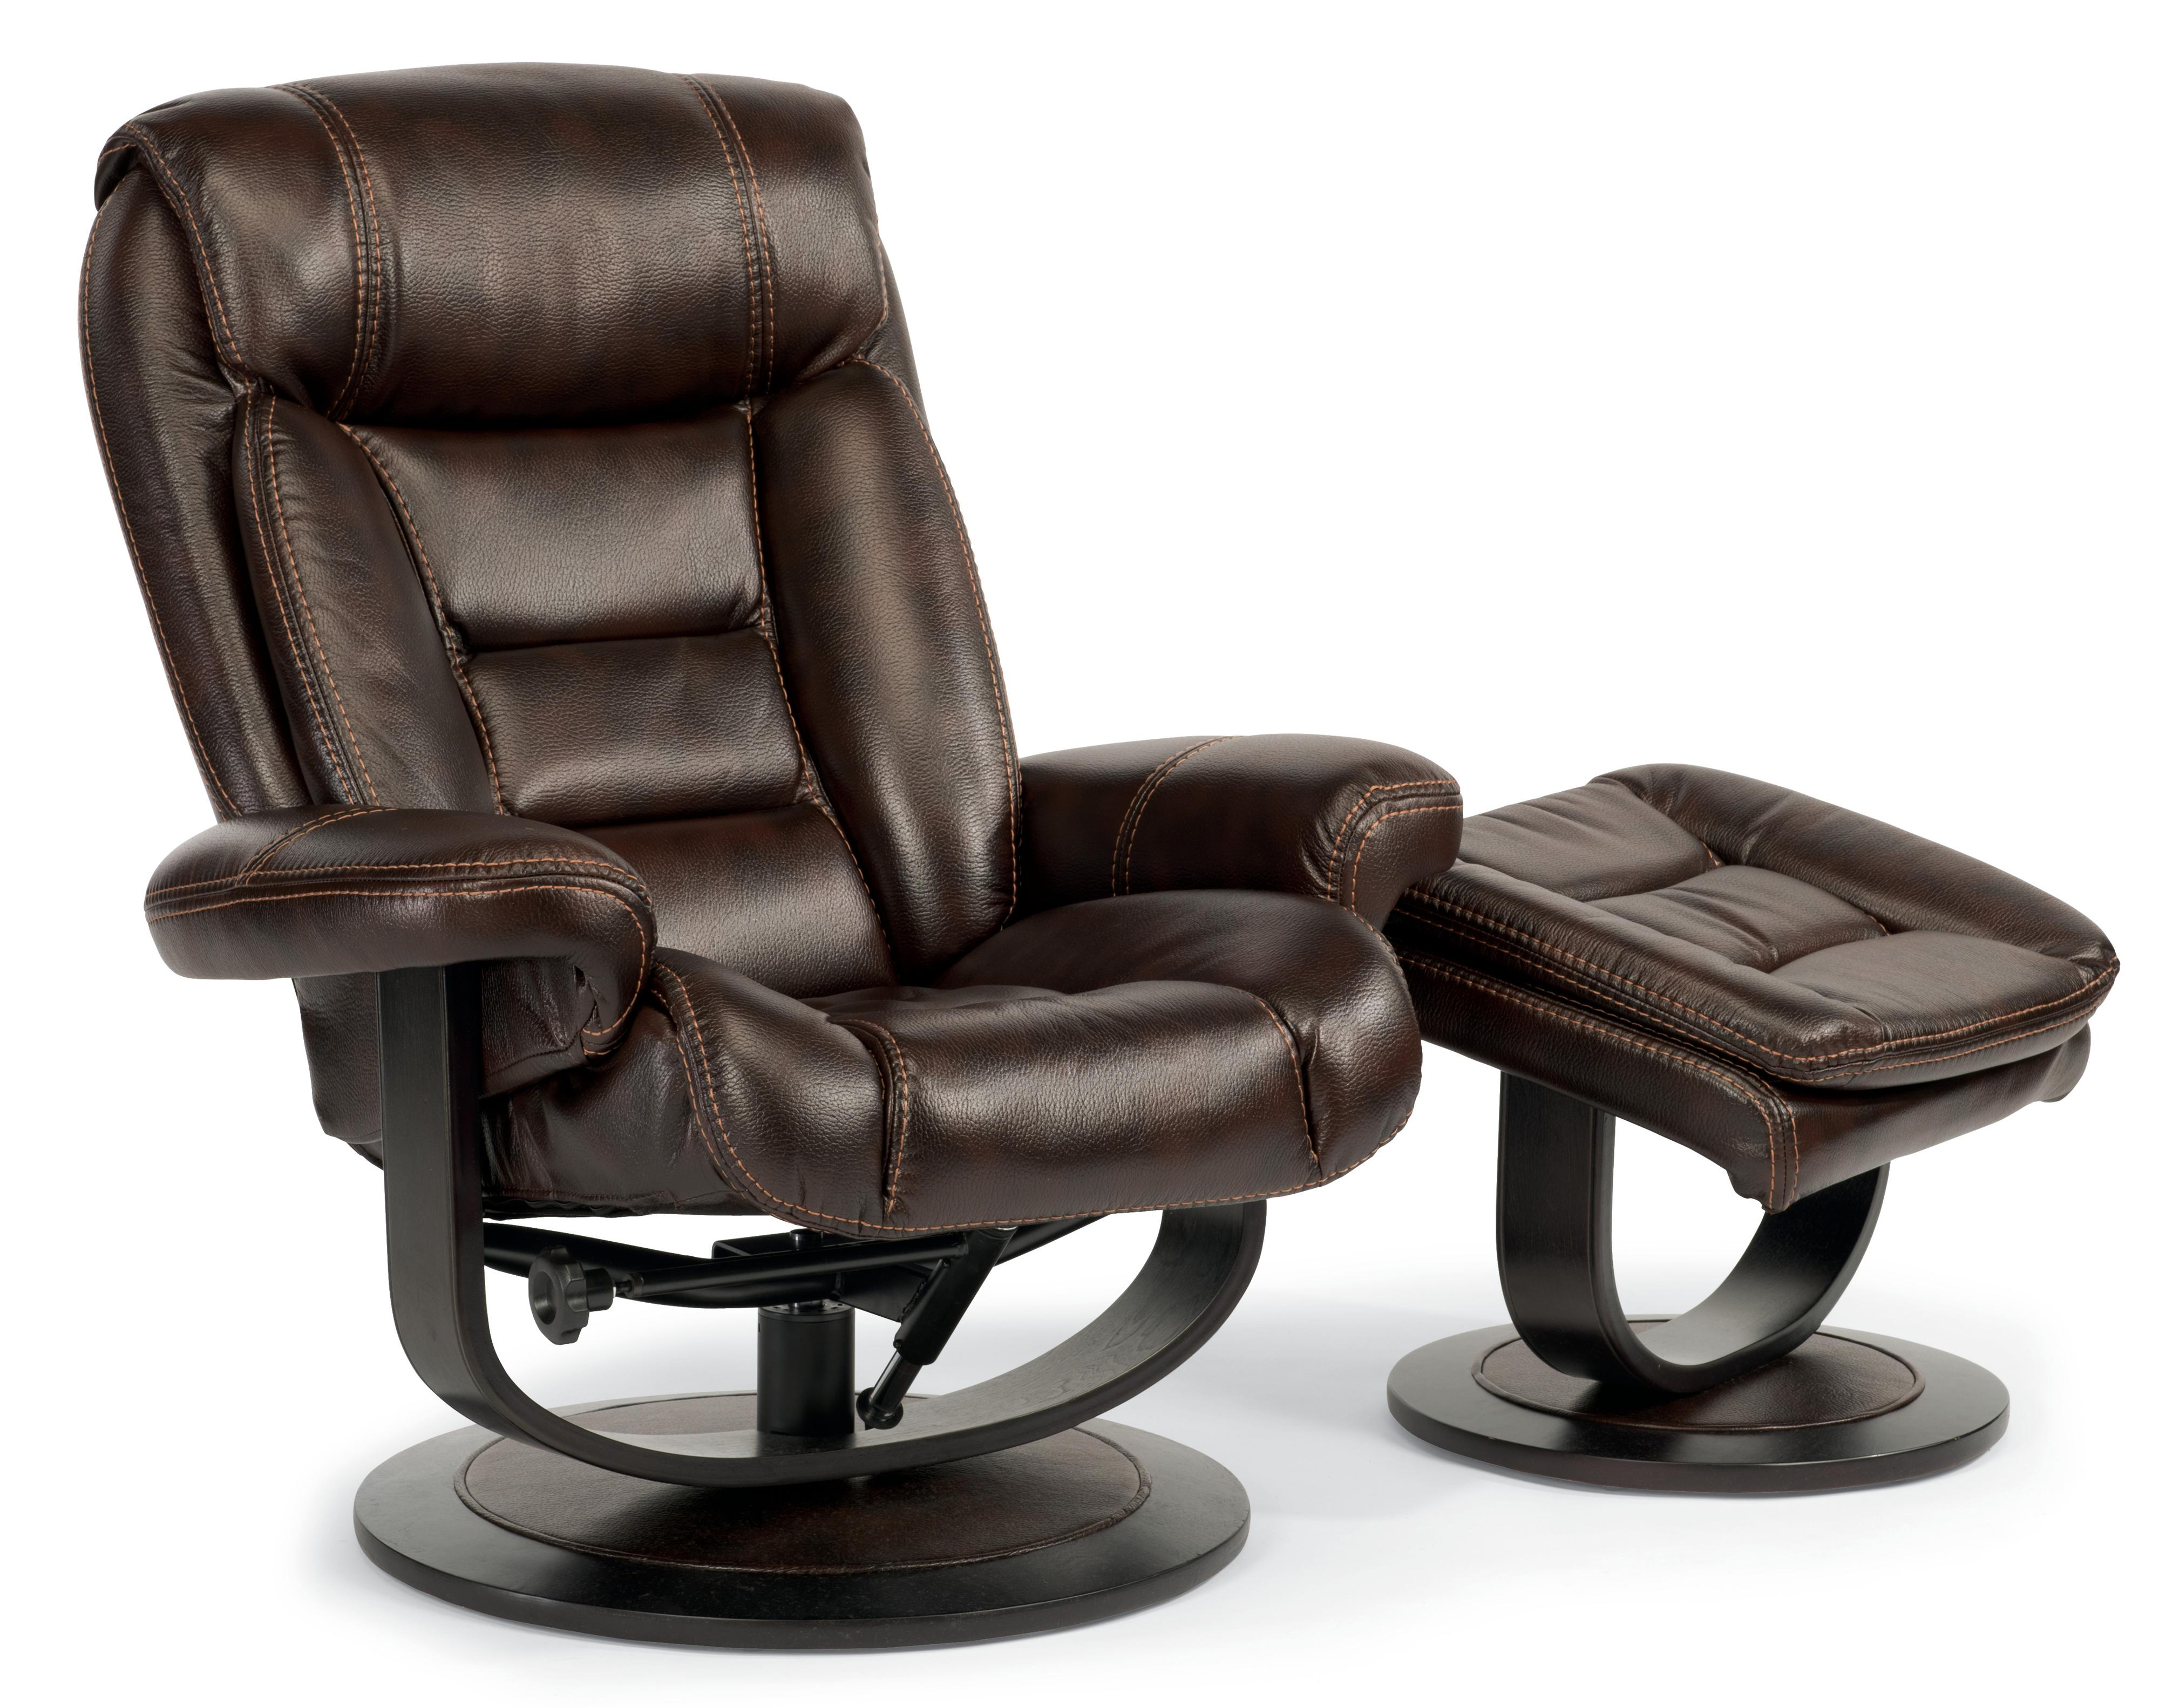 Flexsteel Latitudes-Hunter Reclining Chair and Ottoman Set - Item Number: 1454-CO-580-70